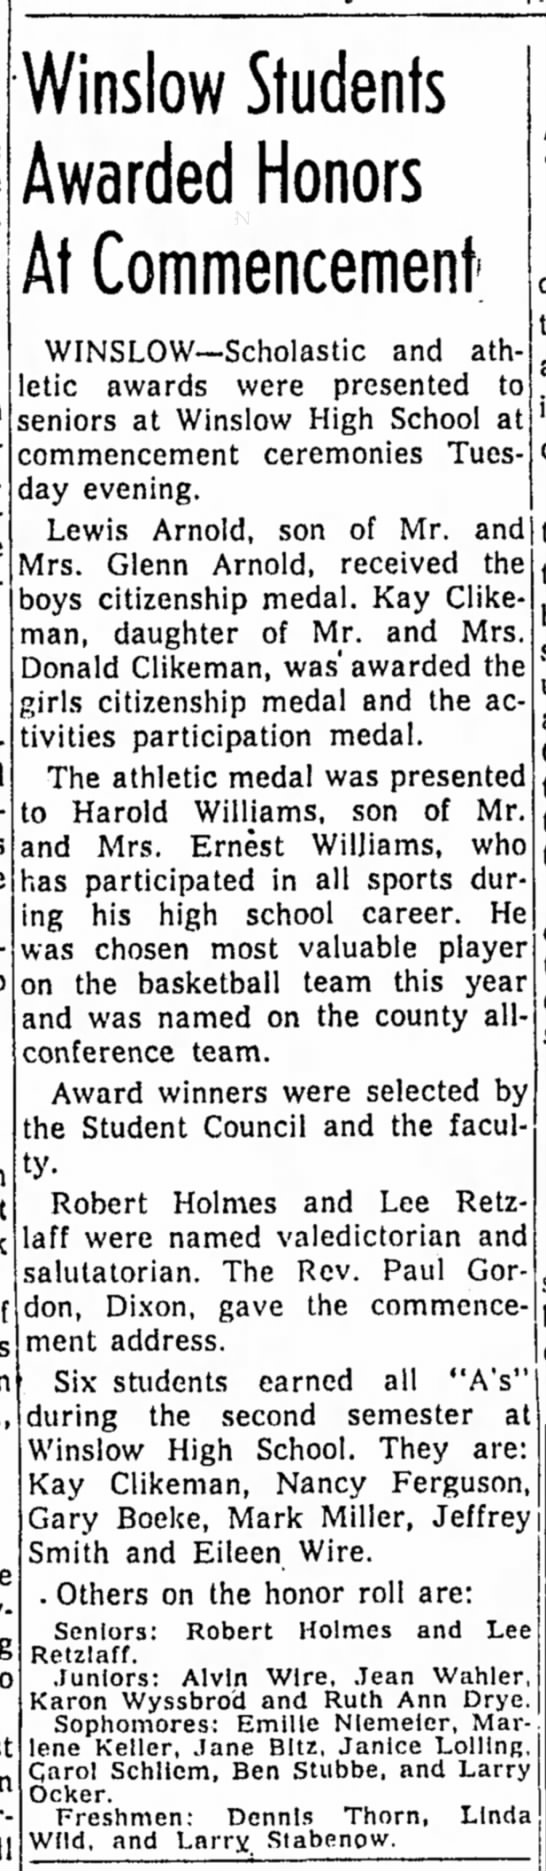 Freeport Journal-Standard, 31 May 1956, Winslow Students Awarded Honors At Commencement -